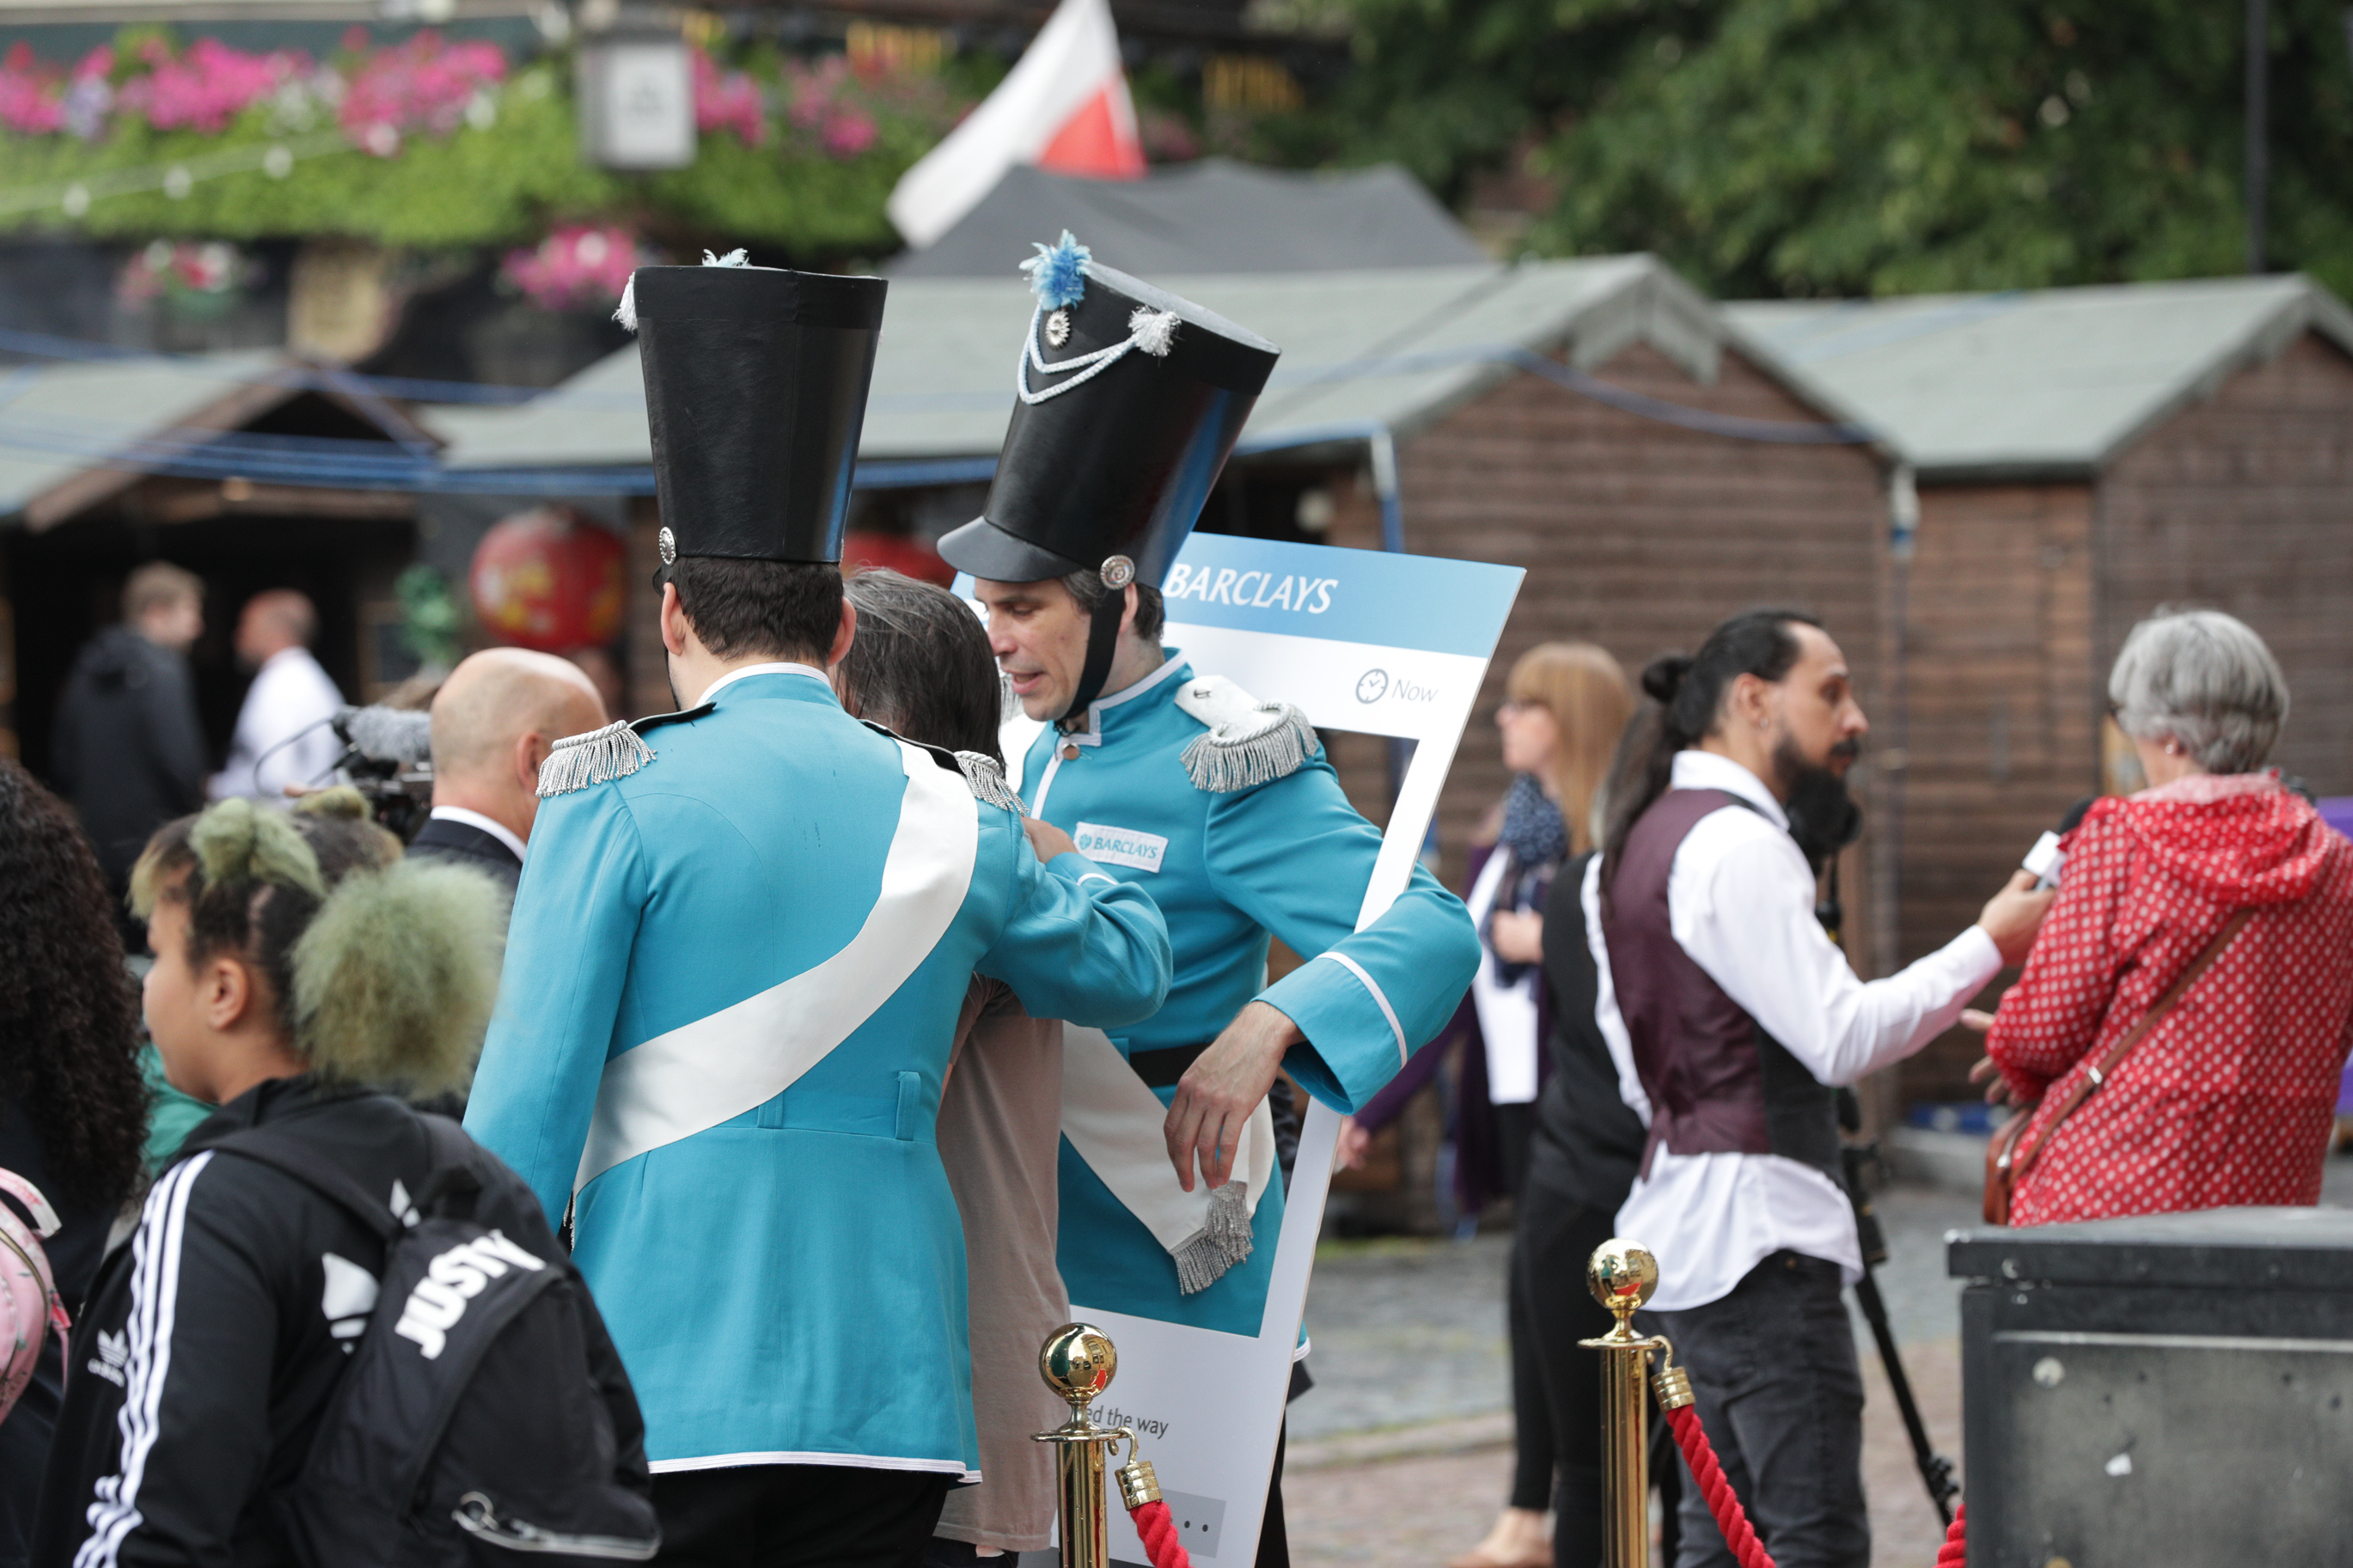 2 guards dressed in Barclays brand colour cyan entertain a woman attending the celebration of the world's first ATM